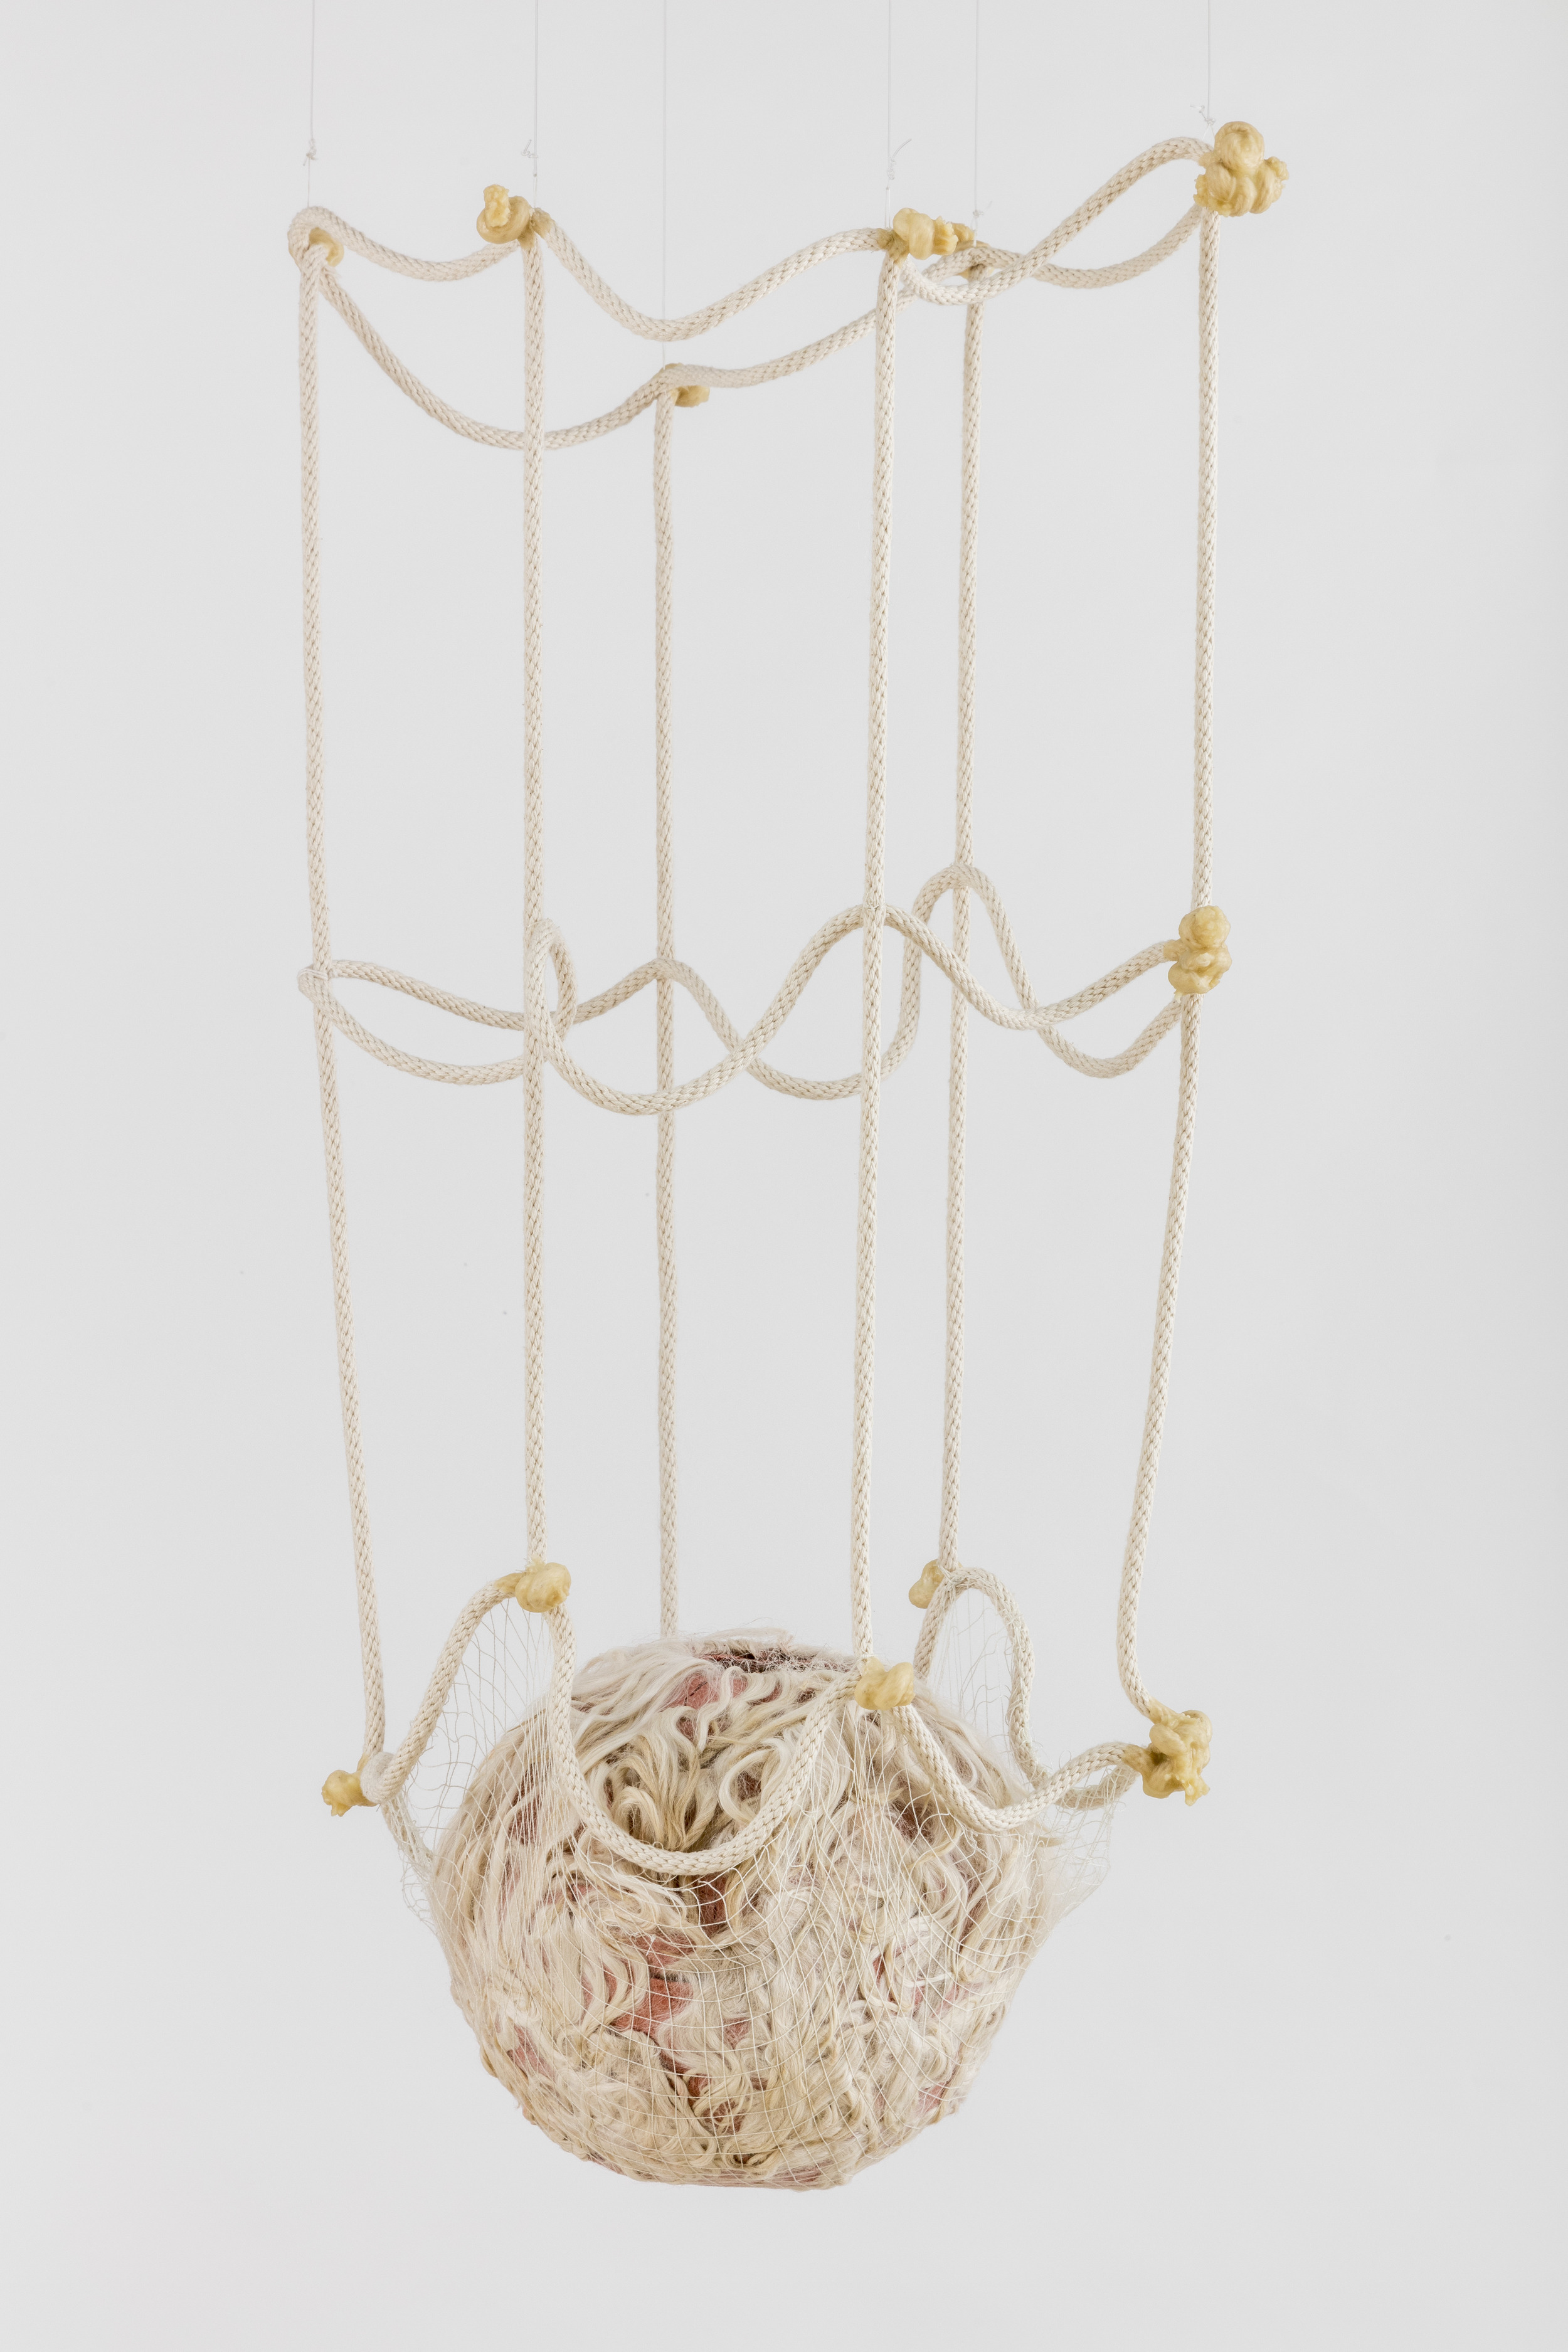 Tanya Aguiniga   Gynic Dispossession 6 , 2016  Cotton rope, cotton thread, canvas, self-drying clay,alpaca and beeswax  33 x 17 x 12 inches